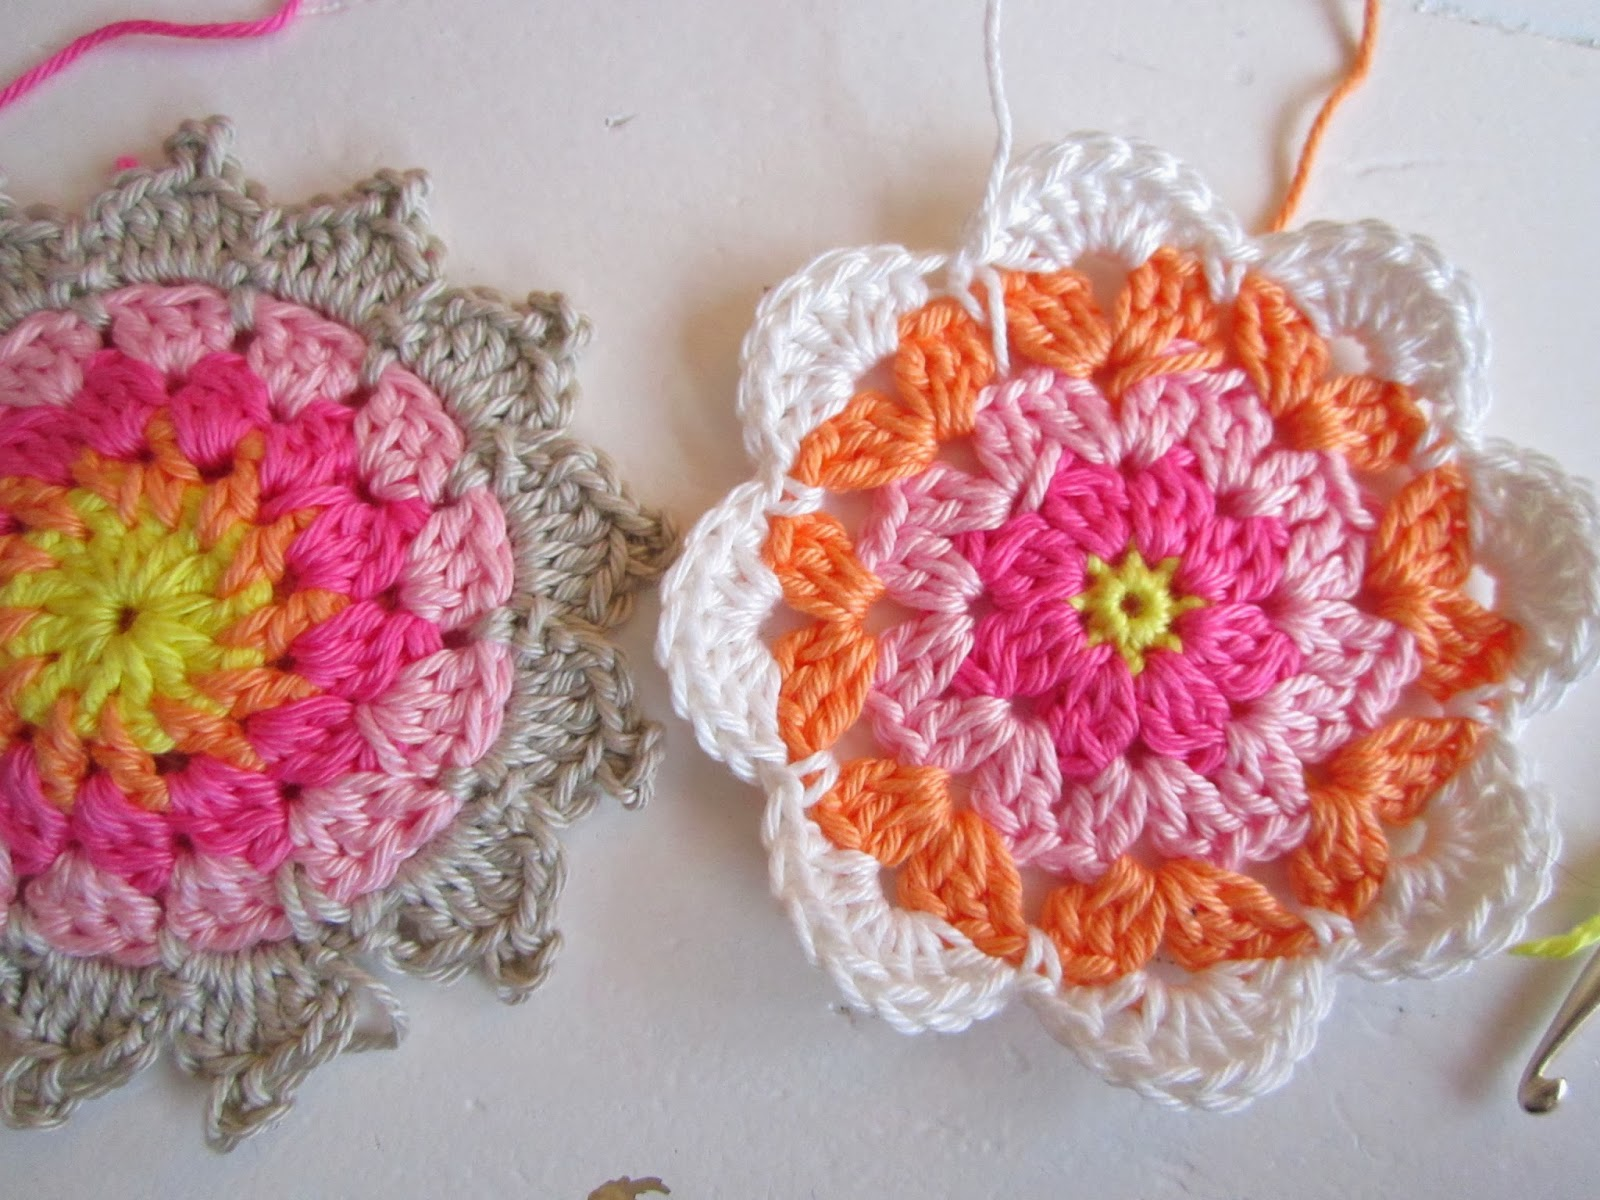 Color n Cream Crochet and Dream: Crocheters Block